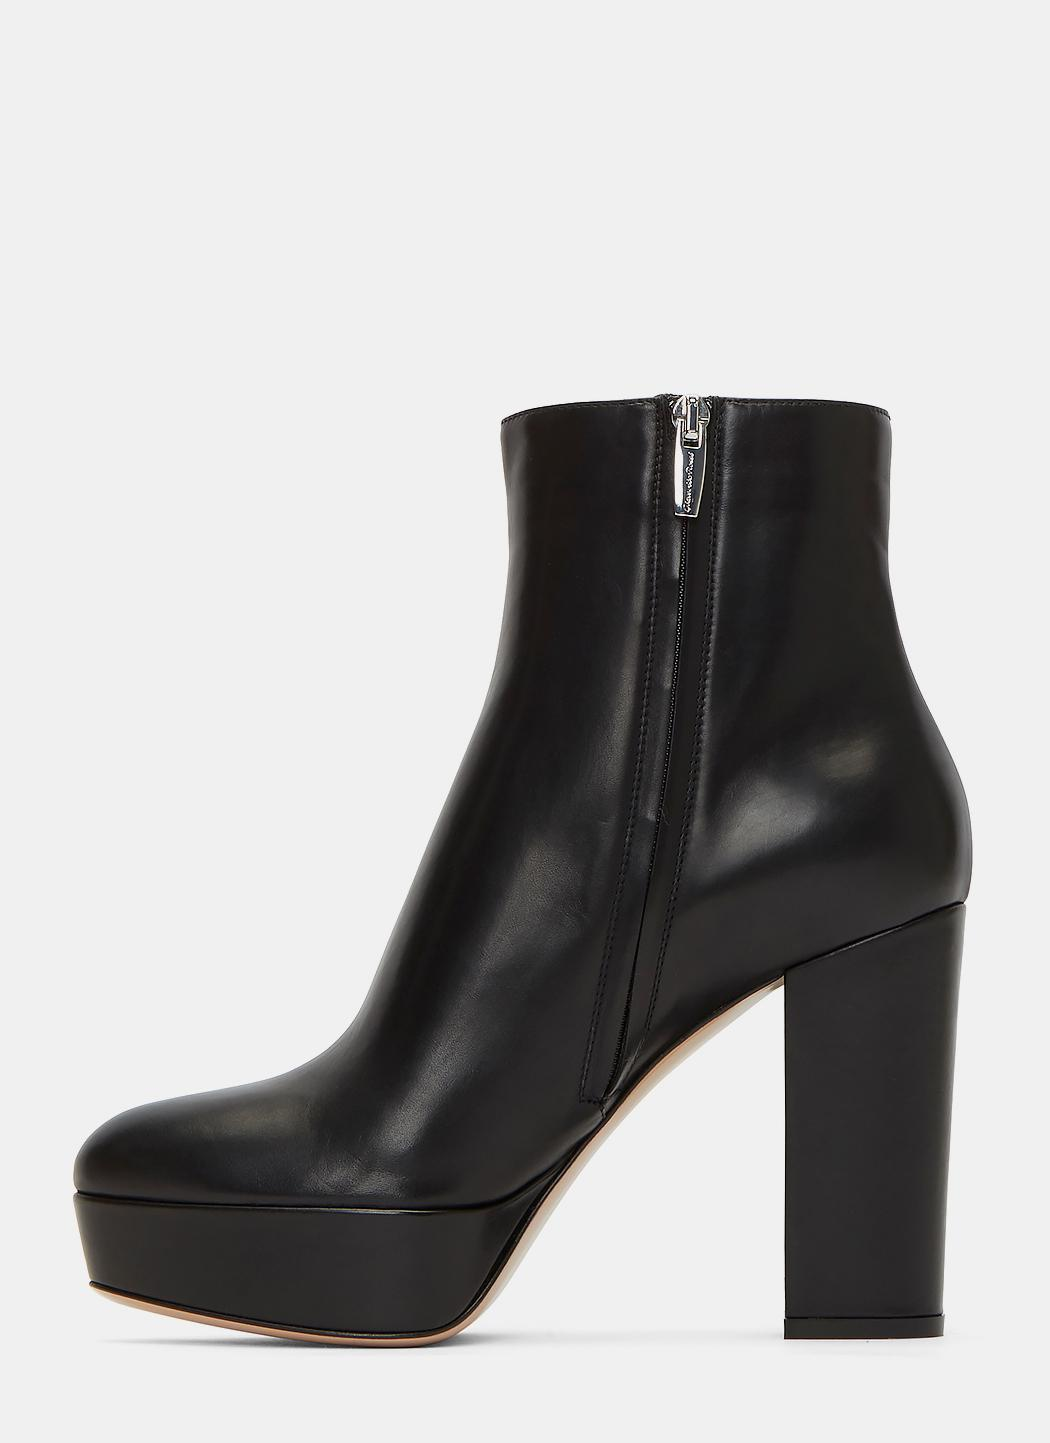 gianvito rossi temple leather platform ankle boots in black lyst. Black Bedroom Furniture Sets. Home Design Ideas